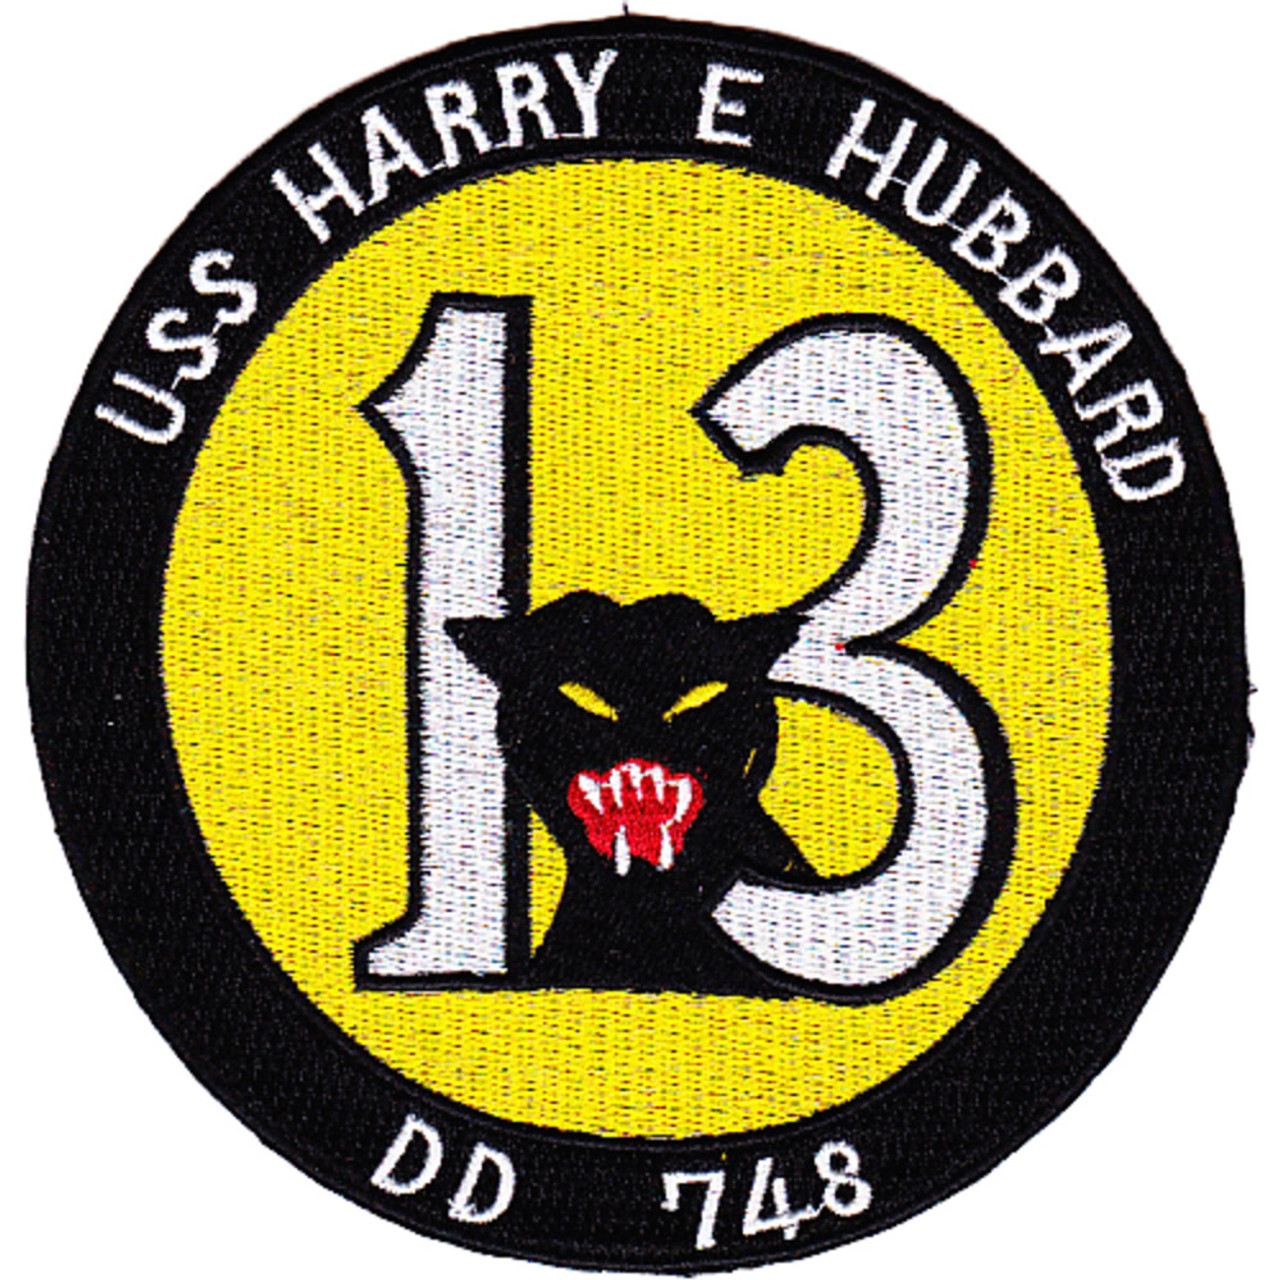 Uss H E Hubbard Dd 748 Destroyer Ship Third Version Patch Destroyer Patches Navy Patches Popular Patch This plane hasn't gotten much attention. uss h e hubbard dd 748 destroyer ship third version patch